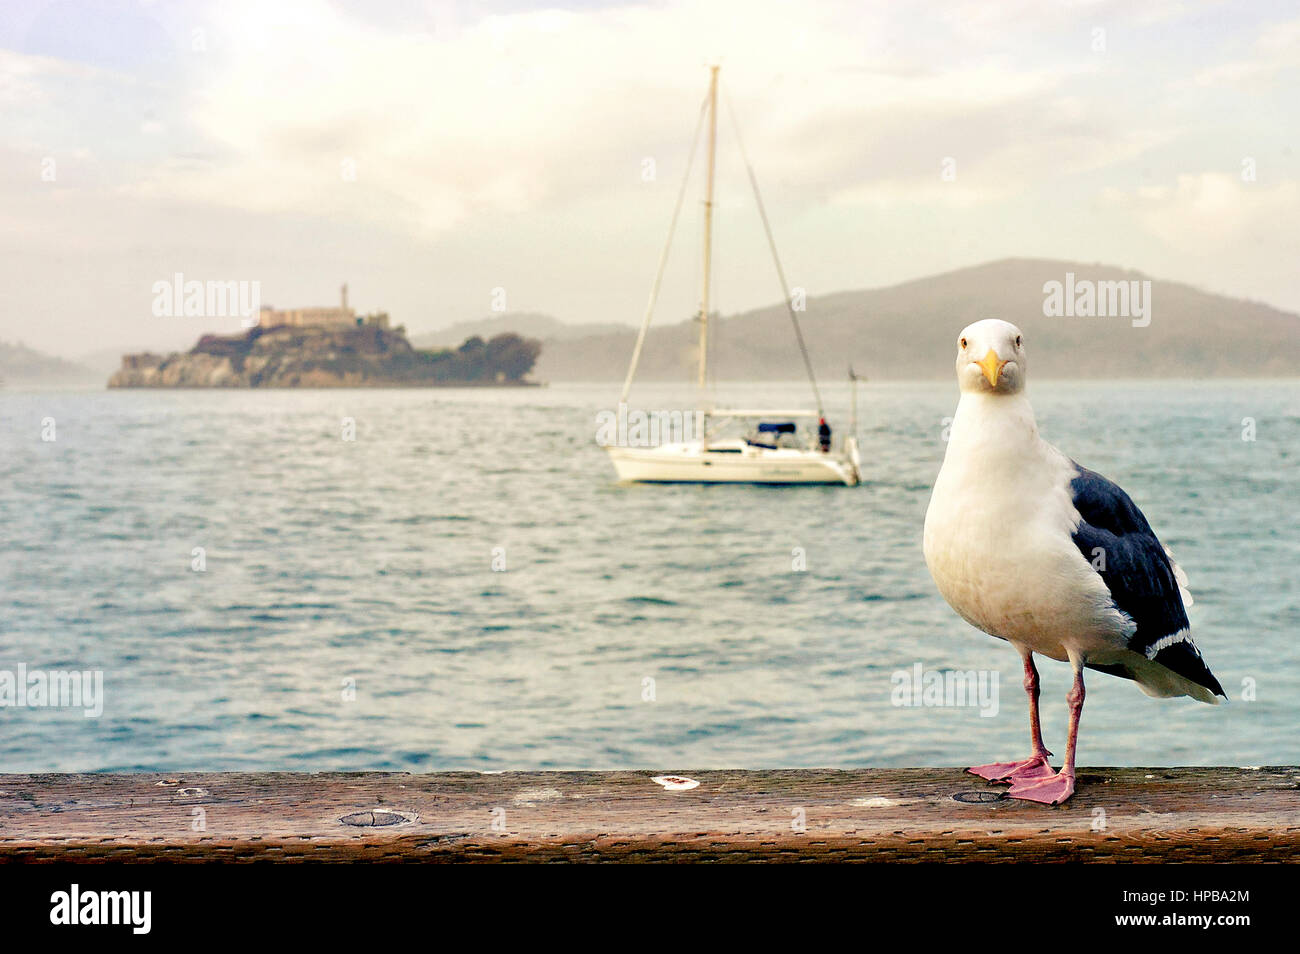 A seagull, sailboat, and a view of Alcatraz Island. - Stock Image